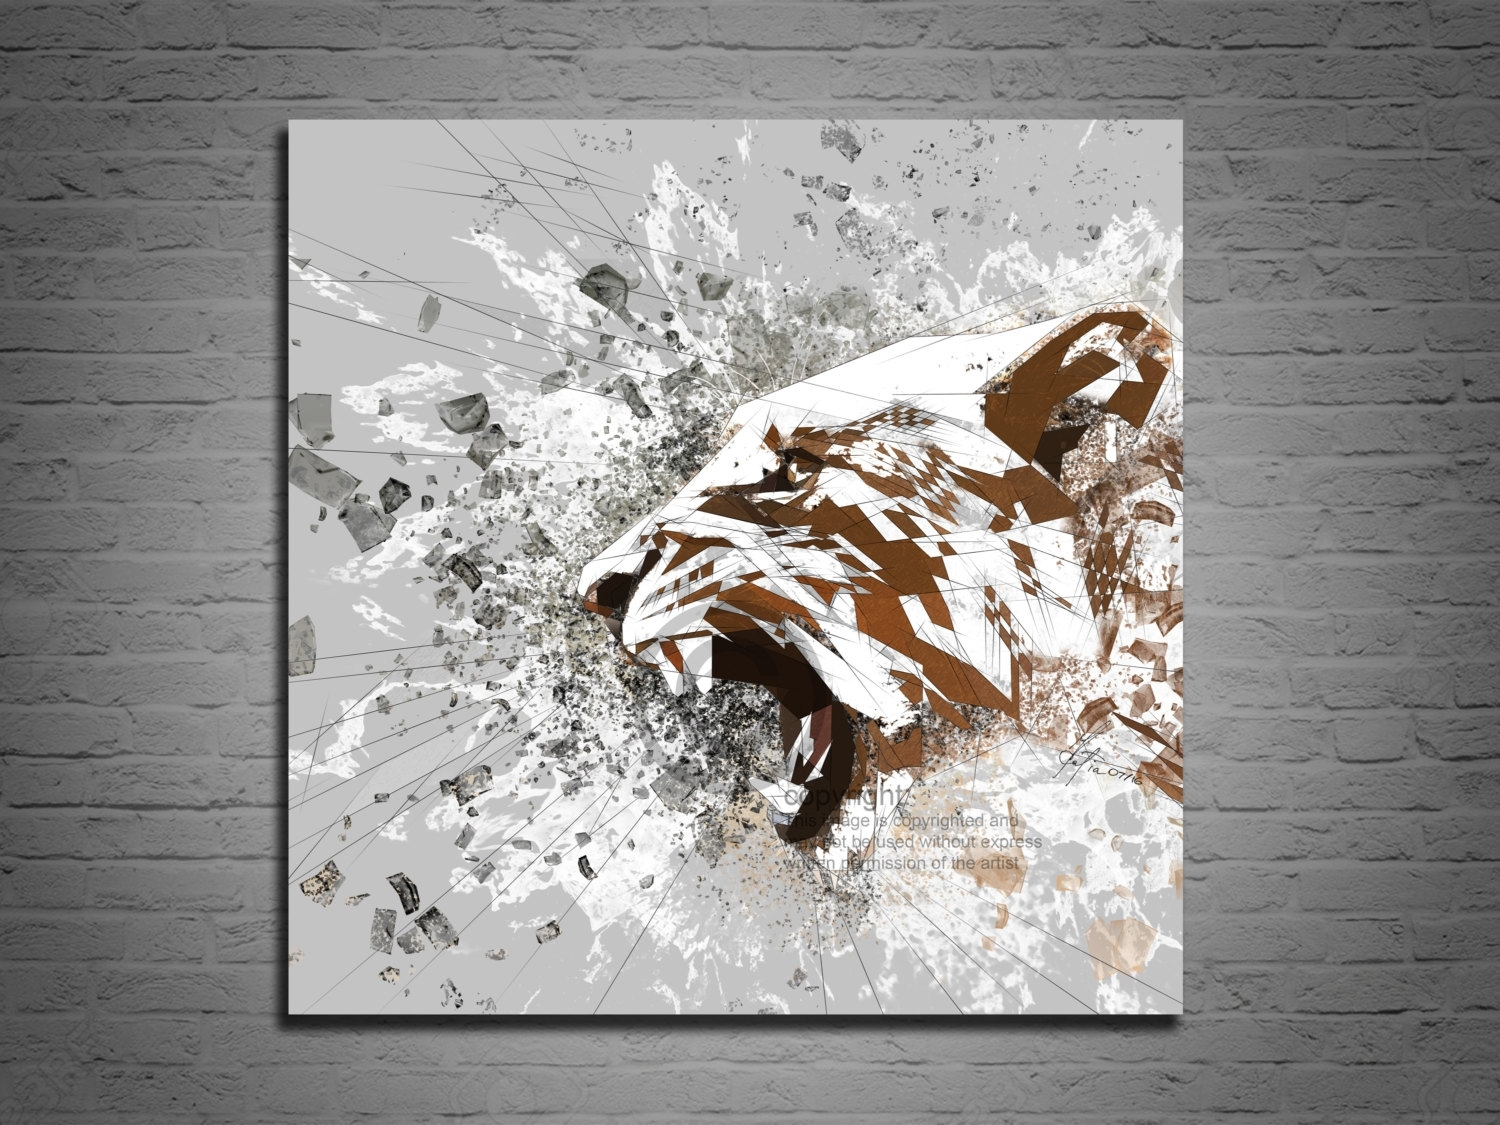 Canvas Art Print Lion Abstract Art, Living Room Decor, Roaring For Most Current Abstract Lion Wall Art (View 15 of 20)